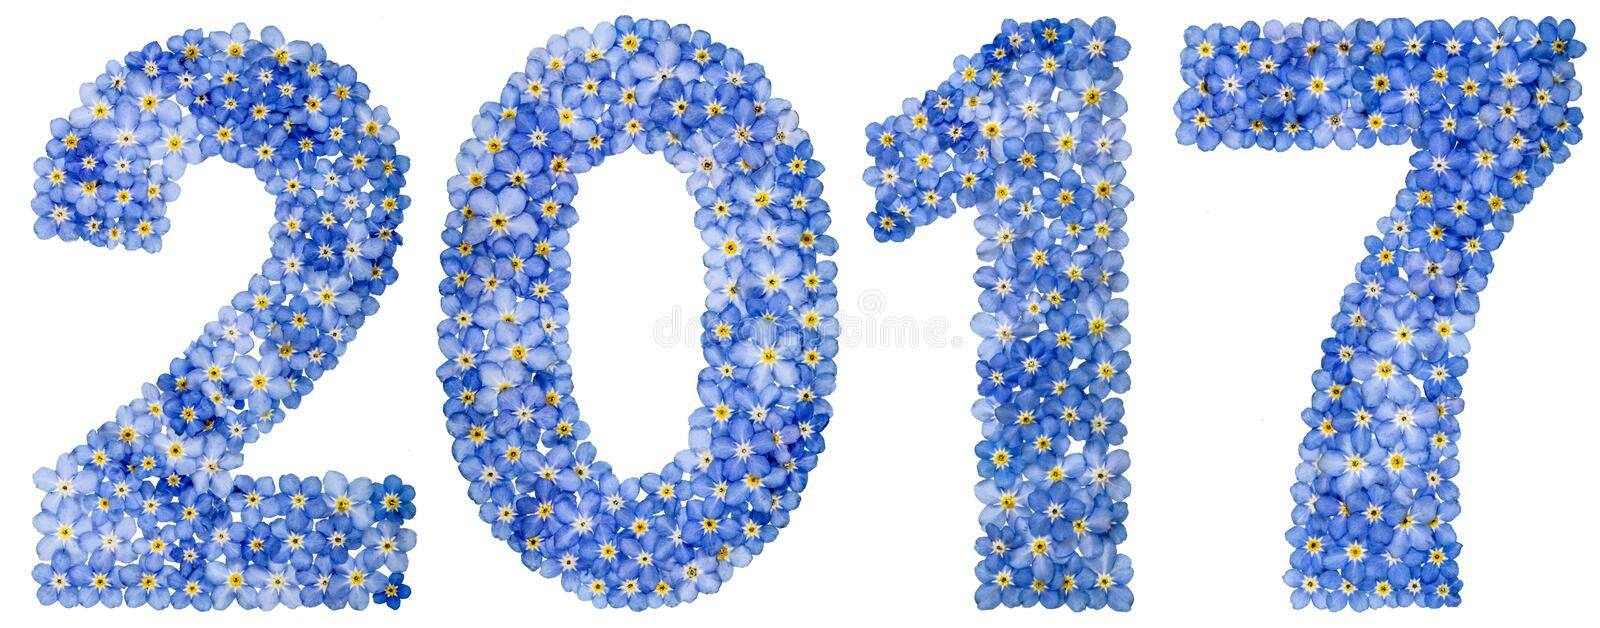 Numeral 2017 das flores azuis do miosótis, isoladas no branco fotos de stock royalty free